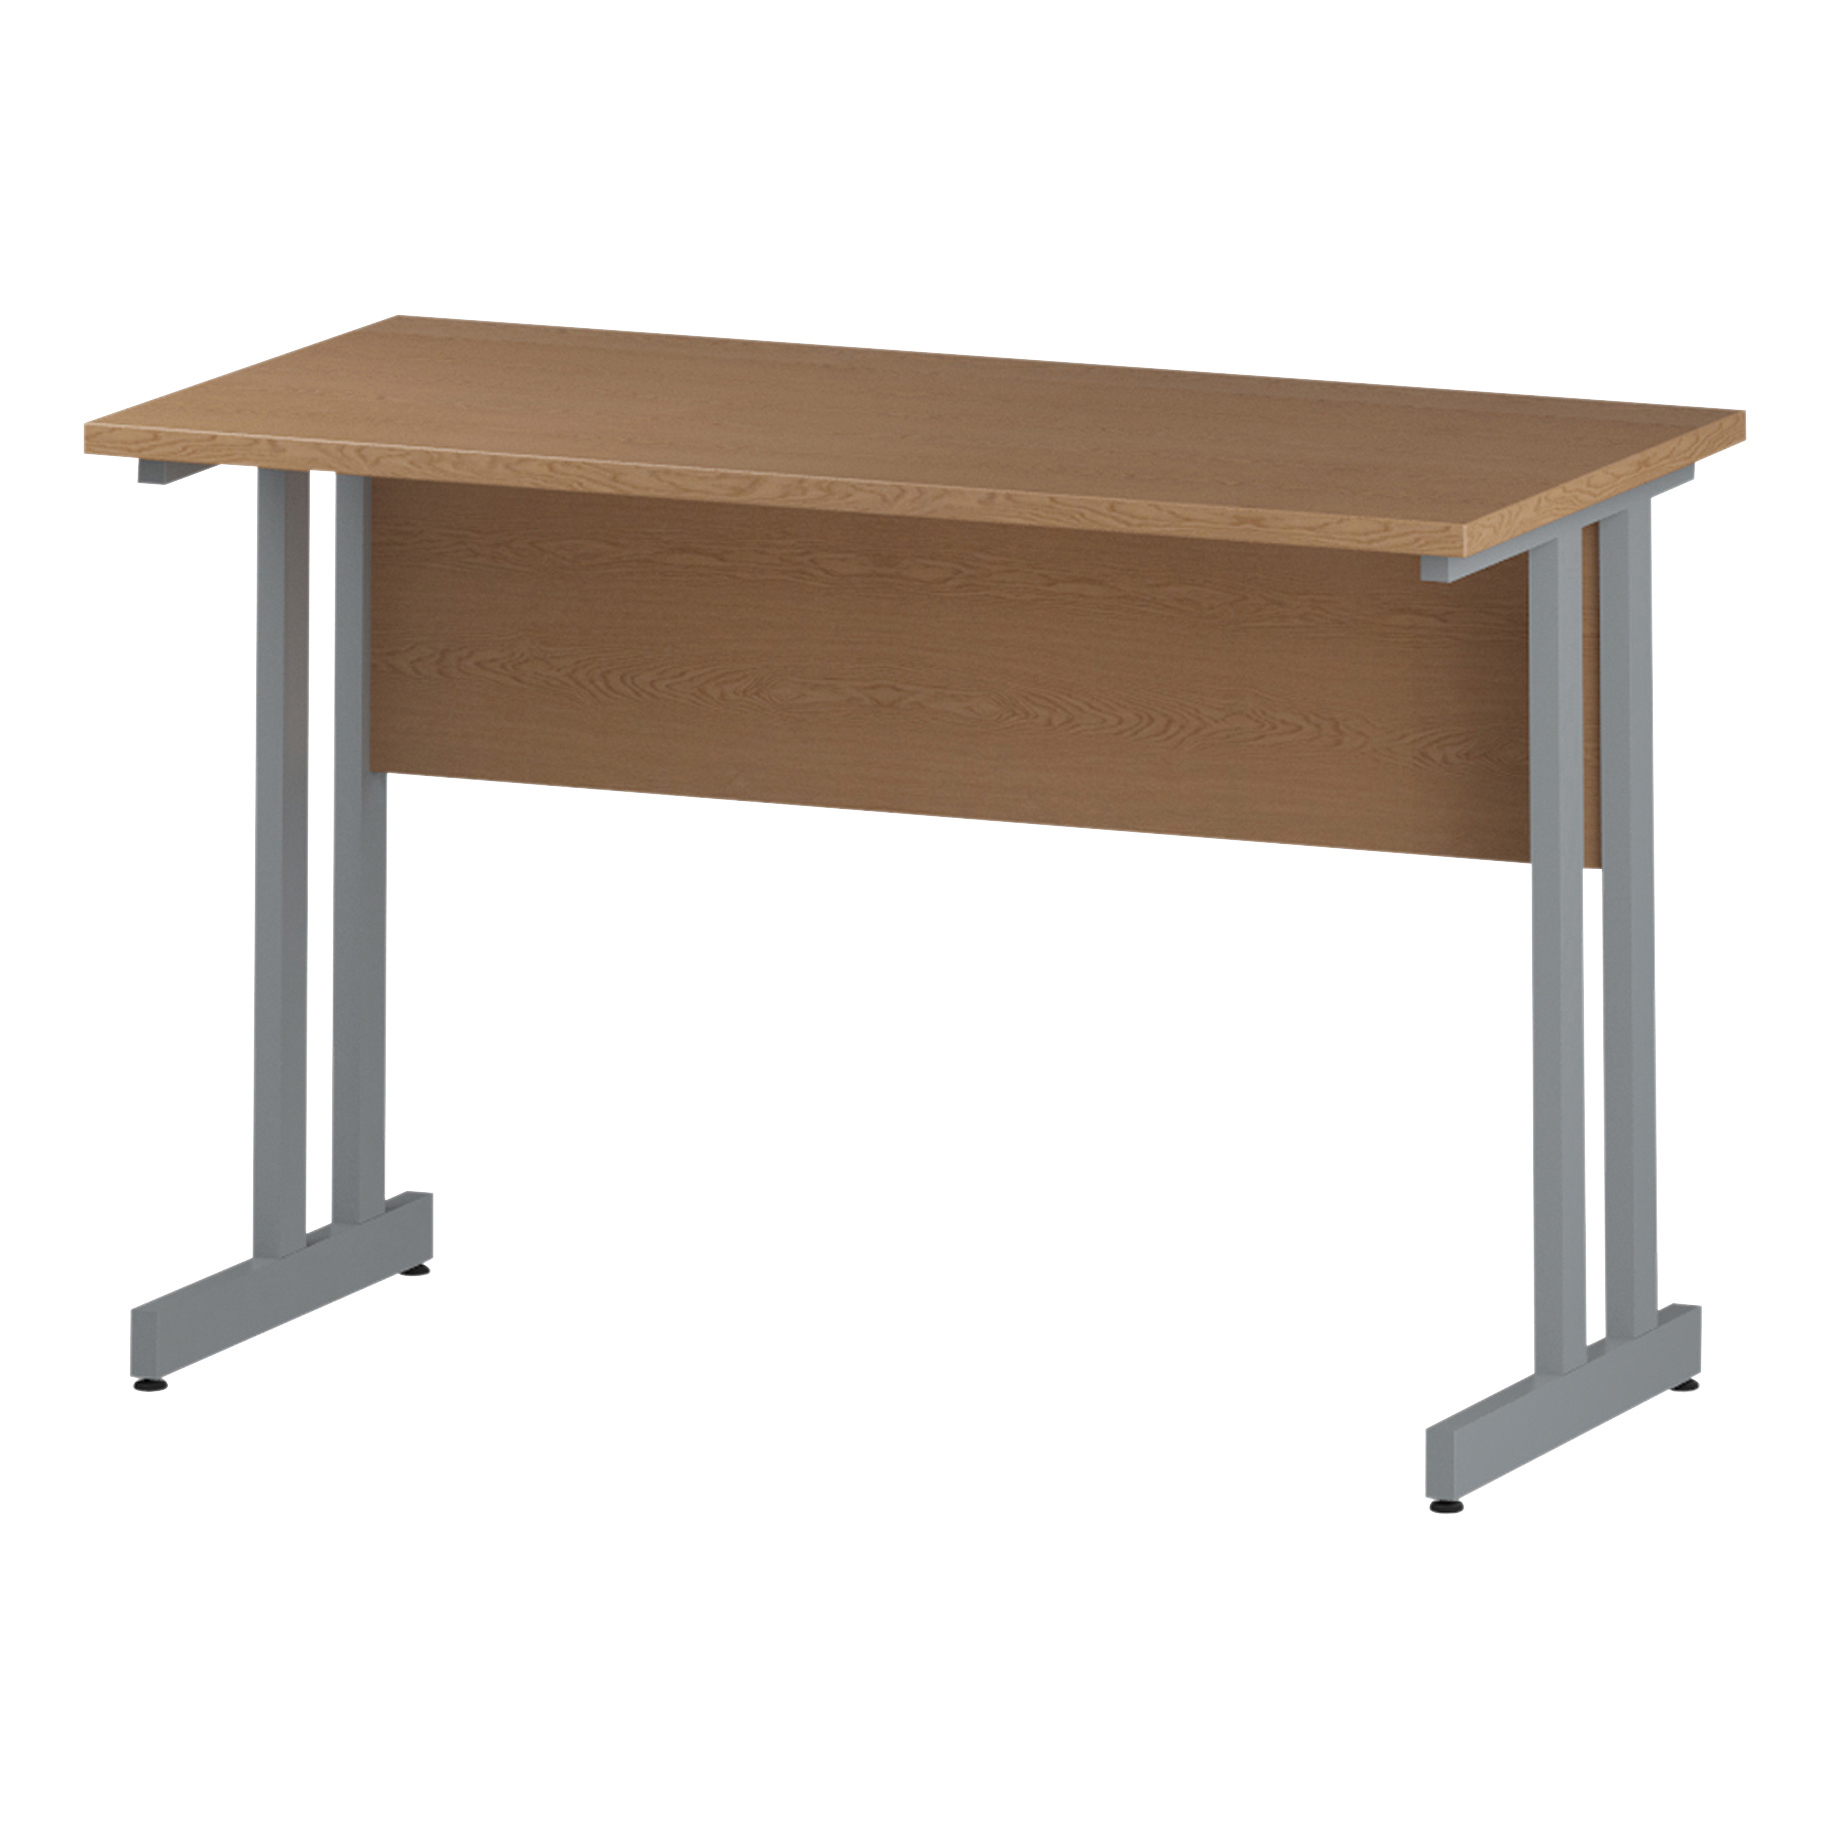 Trexus Rectangular Slim Desk Silver Cantilever Leg 1200x600mm Oak Ref I002648